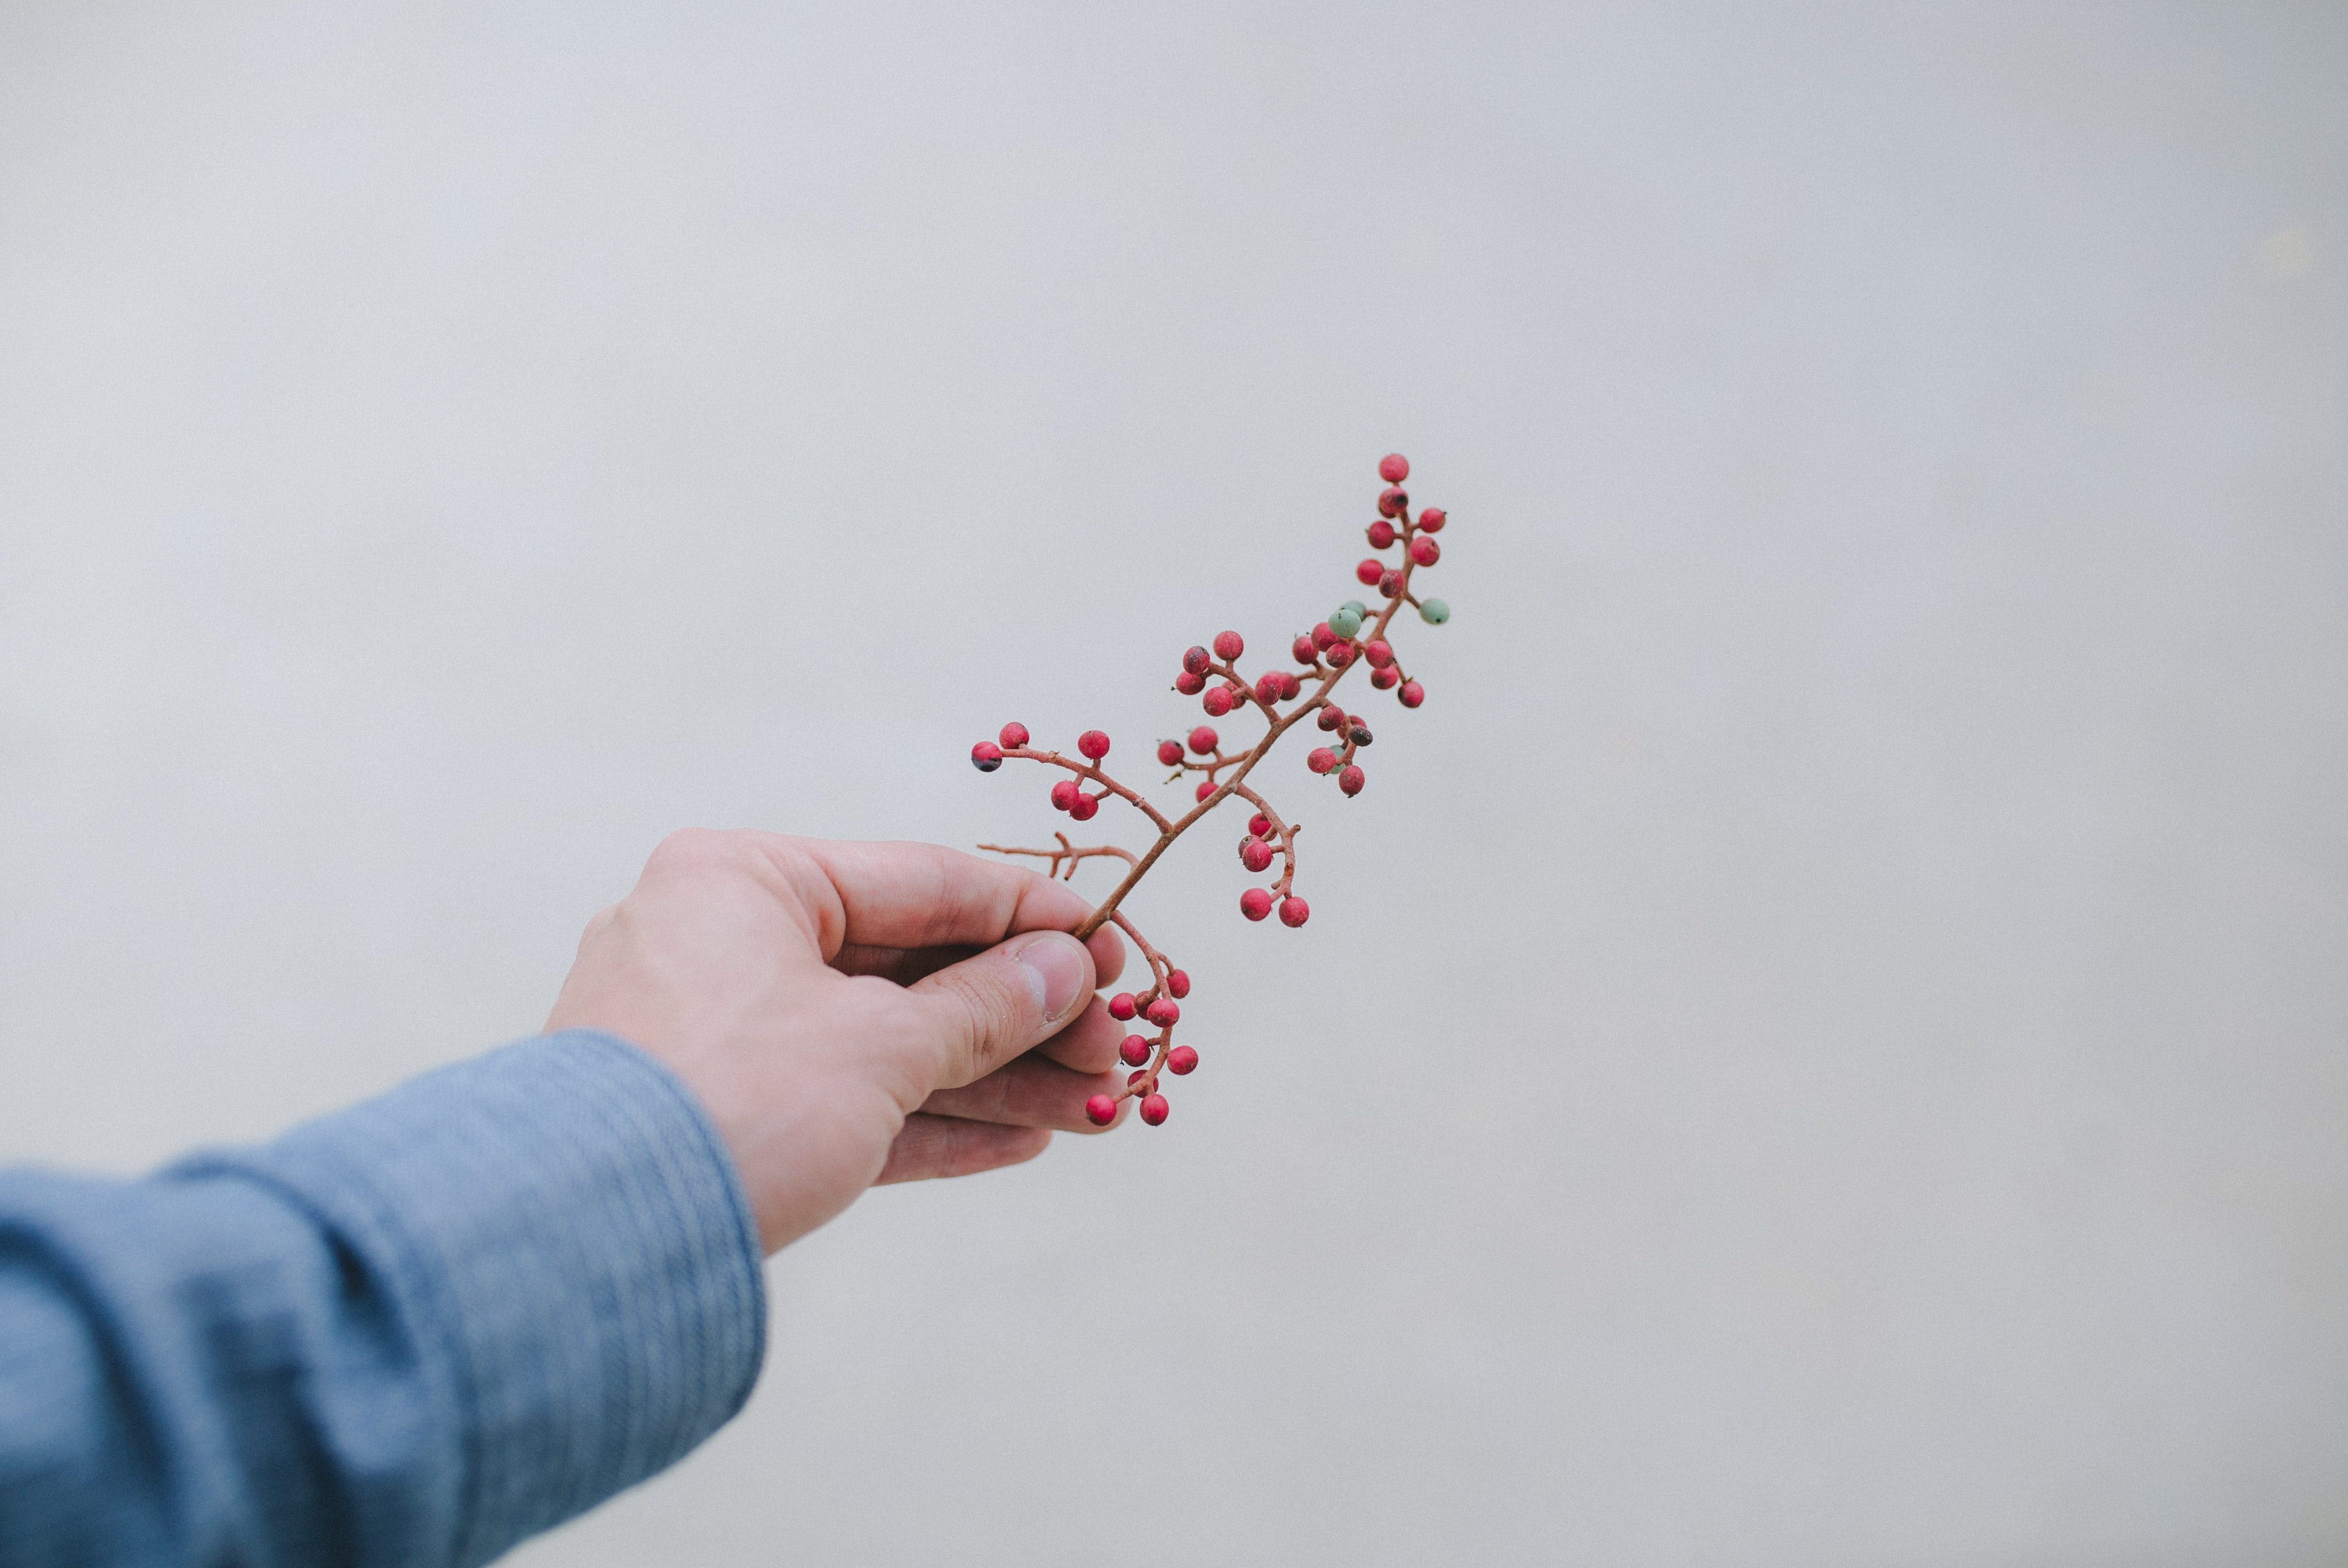 person holding bunch of small red fruits